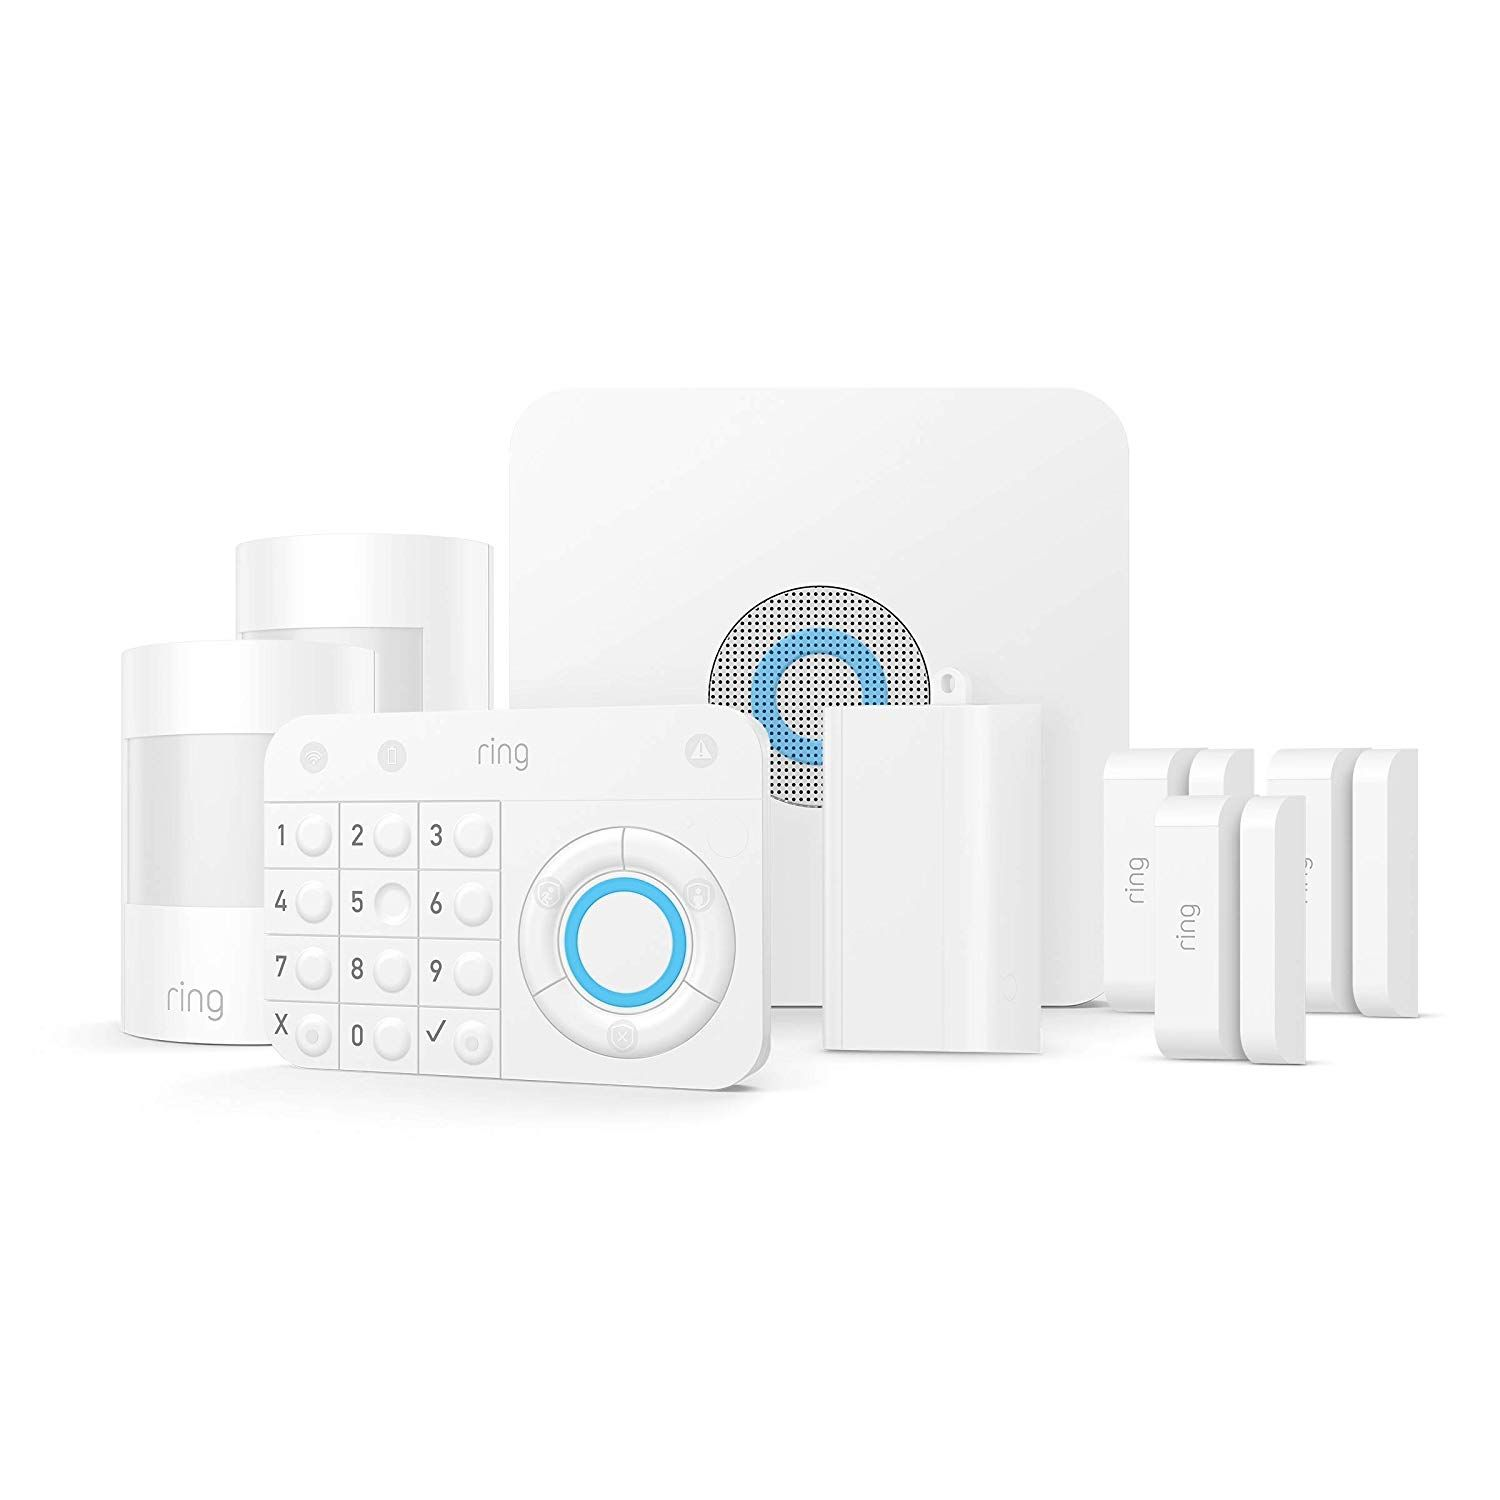 8 Piece Ring Alarm Home Security System Kit On Sale For 188 98 Ring Alarm Puts W Alarm Systems For Home Wireless Home Security Systems Wireless Home Security